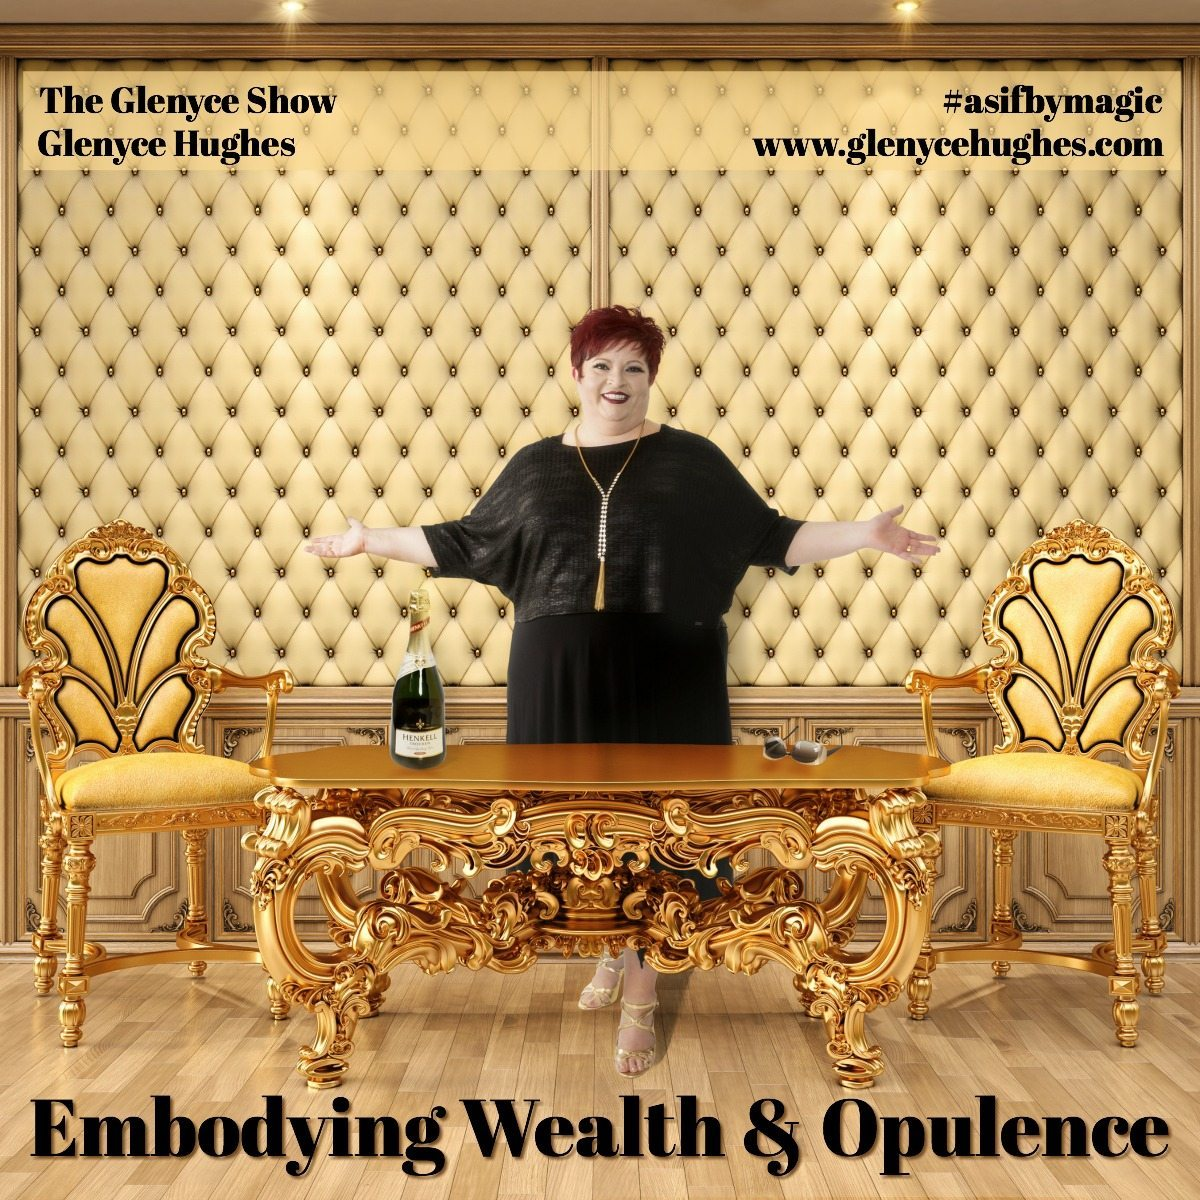 Embodying Wealth and Opulence